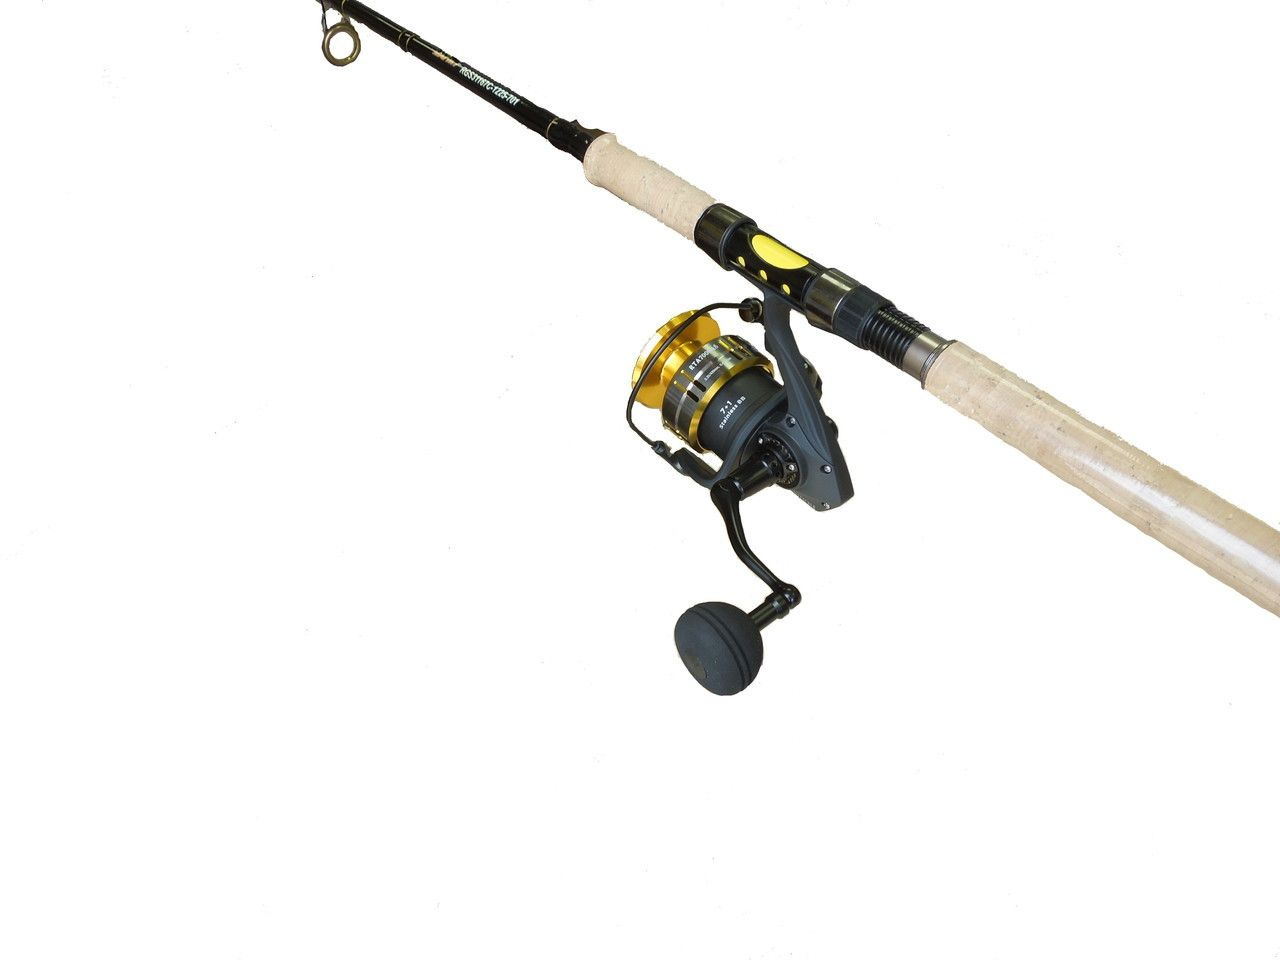 Red Snapper Tournament Edition 7 Ft Spinning Rod Reel Combo Saltwater Fishing Angler Fishinglife Rod And Reel Saltwater Fishing Saltwater Fishing Gear